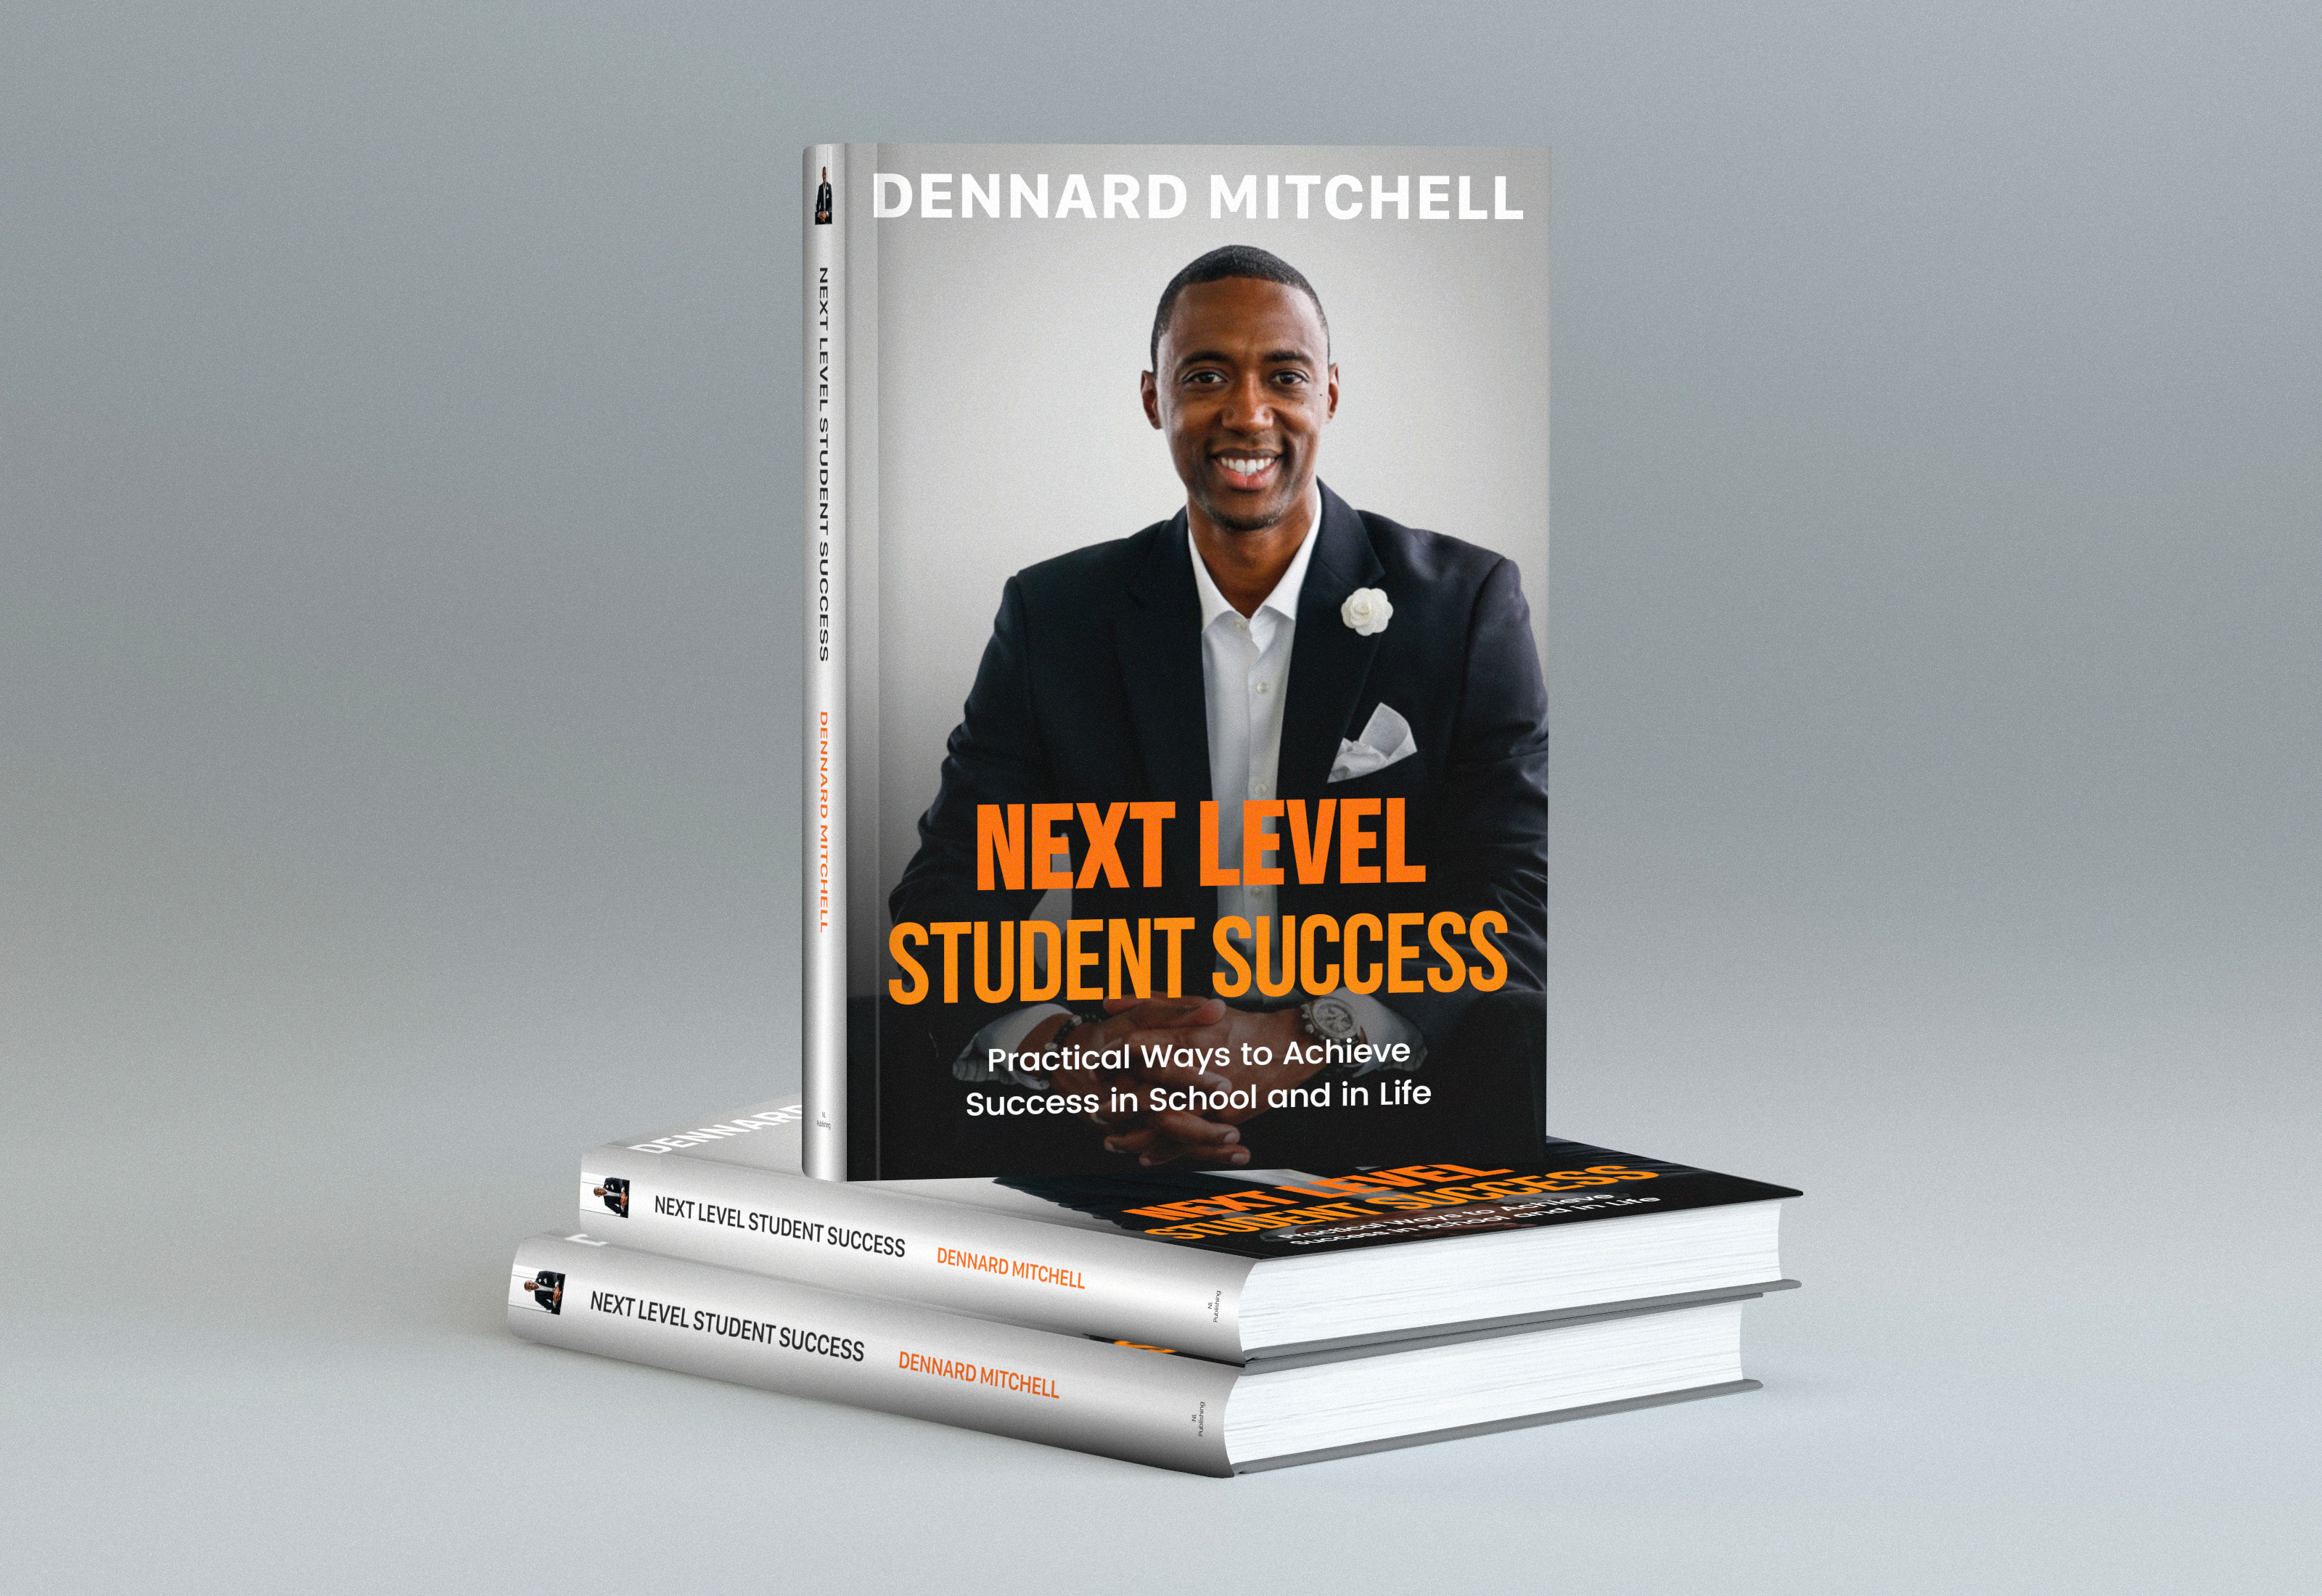 Acclaimed Leadership Facilitator Mr. Dennard Mitchell Releases Next Level Student Success, New Book Aiming To Introduce Excellence In Schooling And Beyond